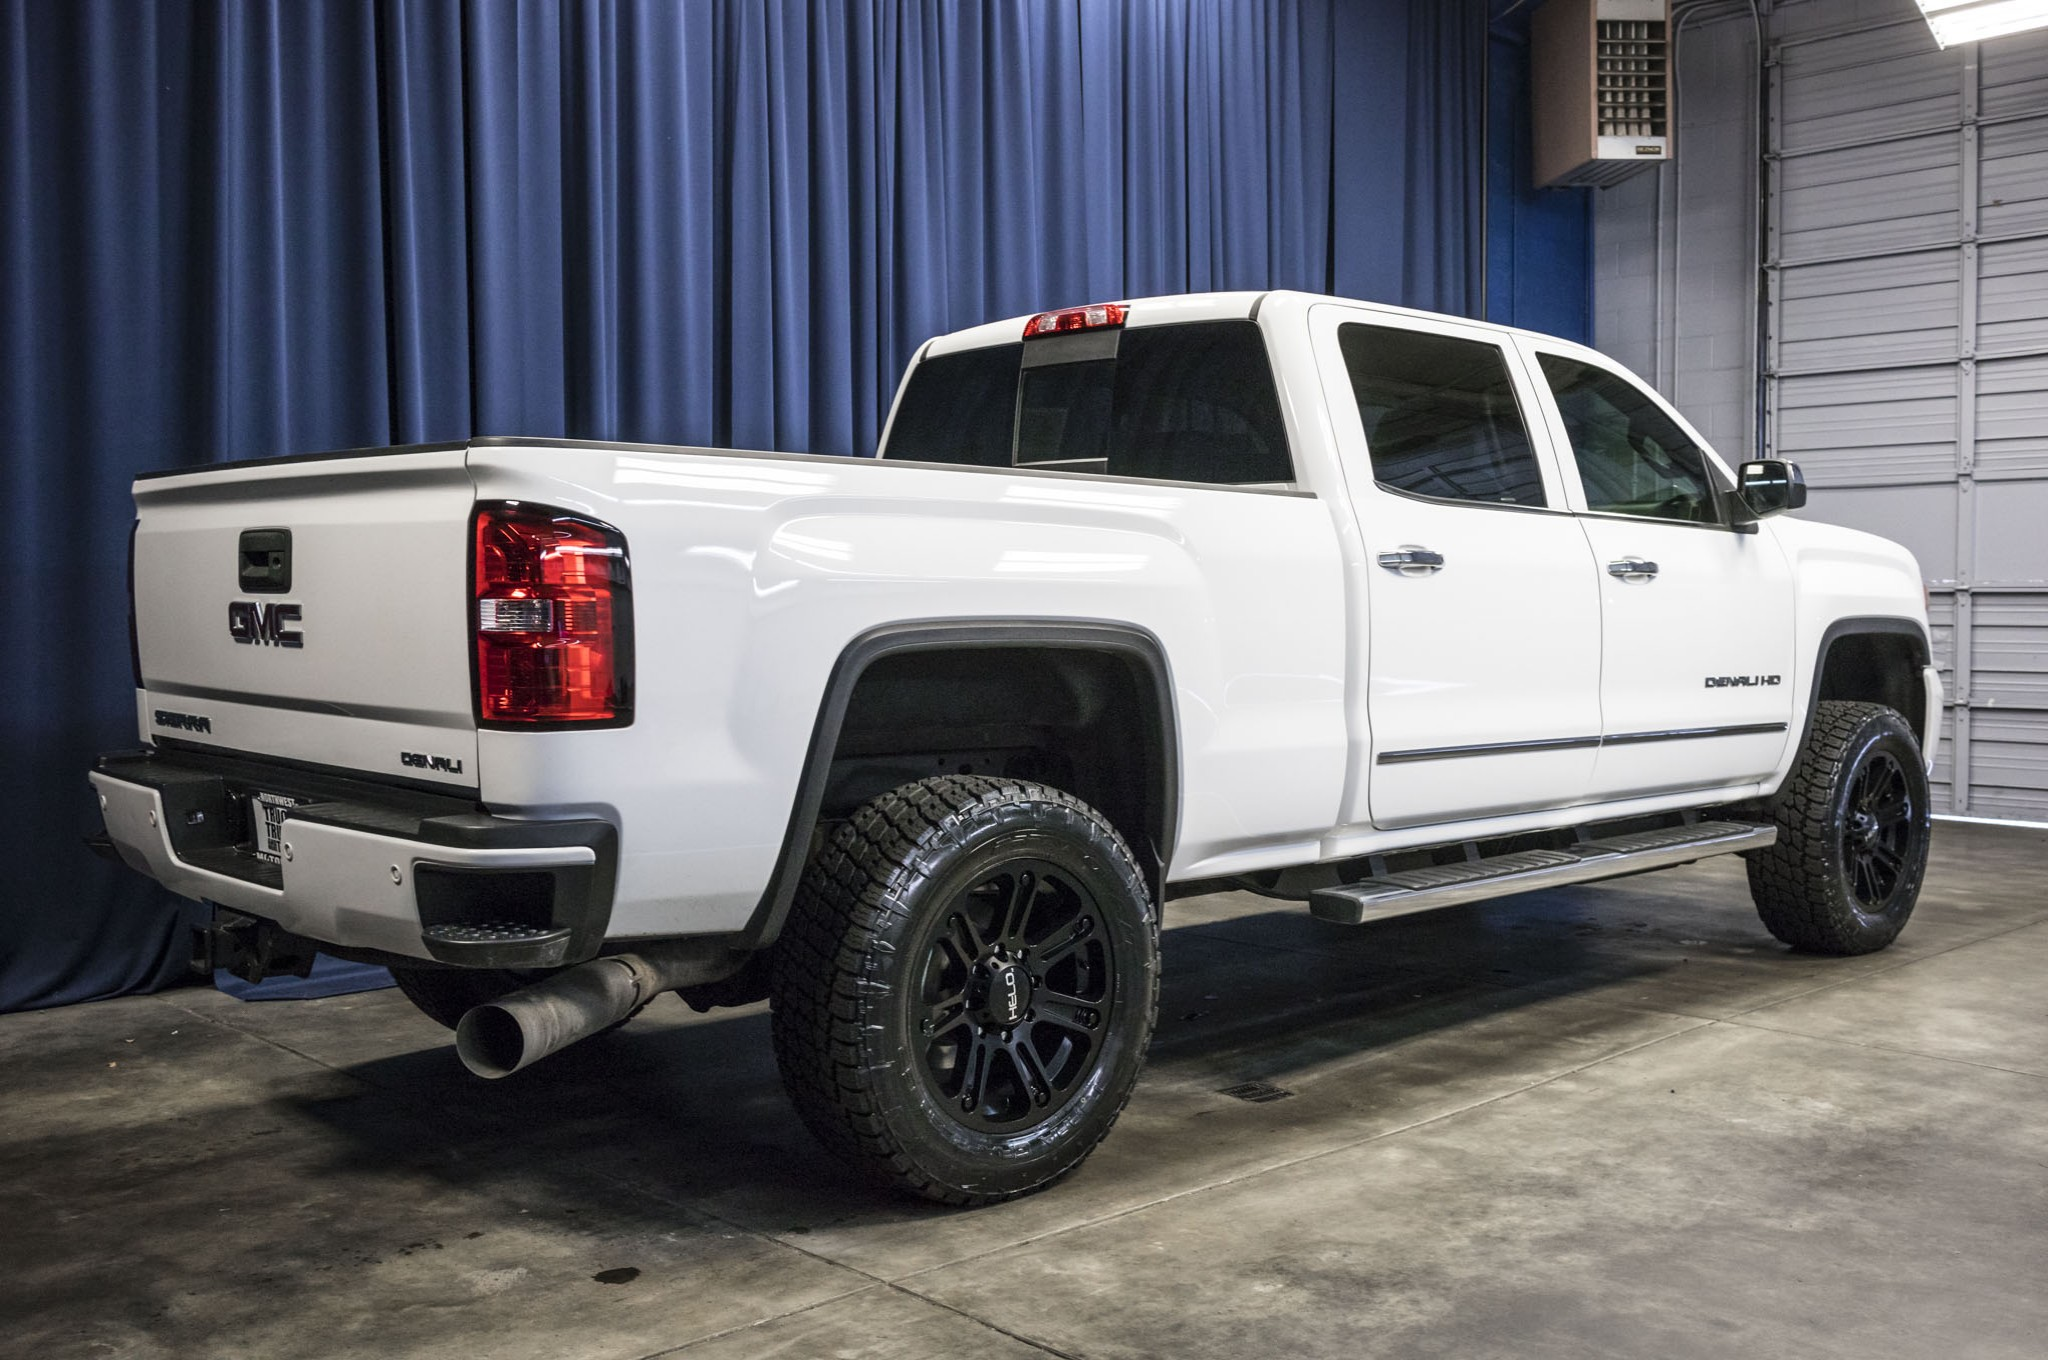 used lifted 2015 gmc sierra 2500 denali 4x4 diesel truck for sale 43656. Black Bedroom Furniture Sets. Home Design Ideas